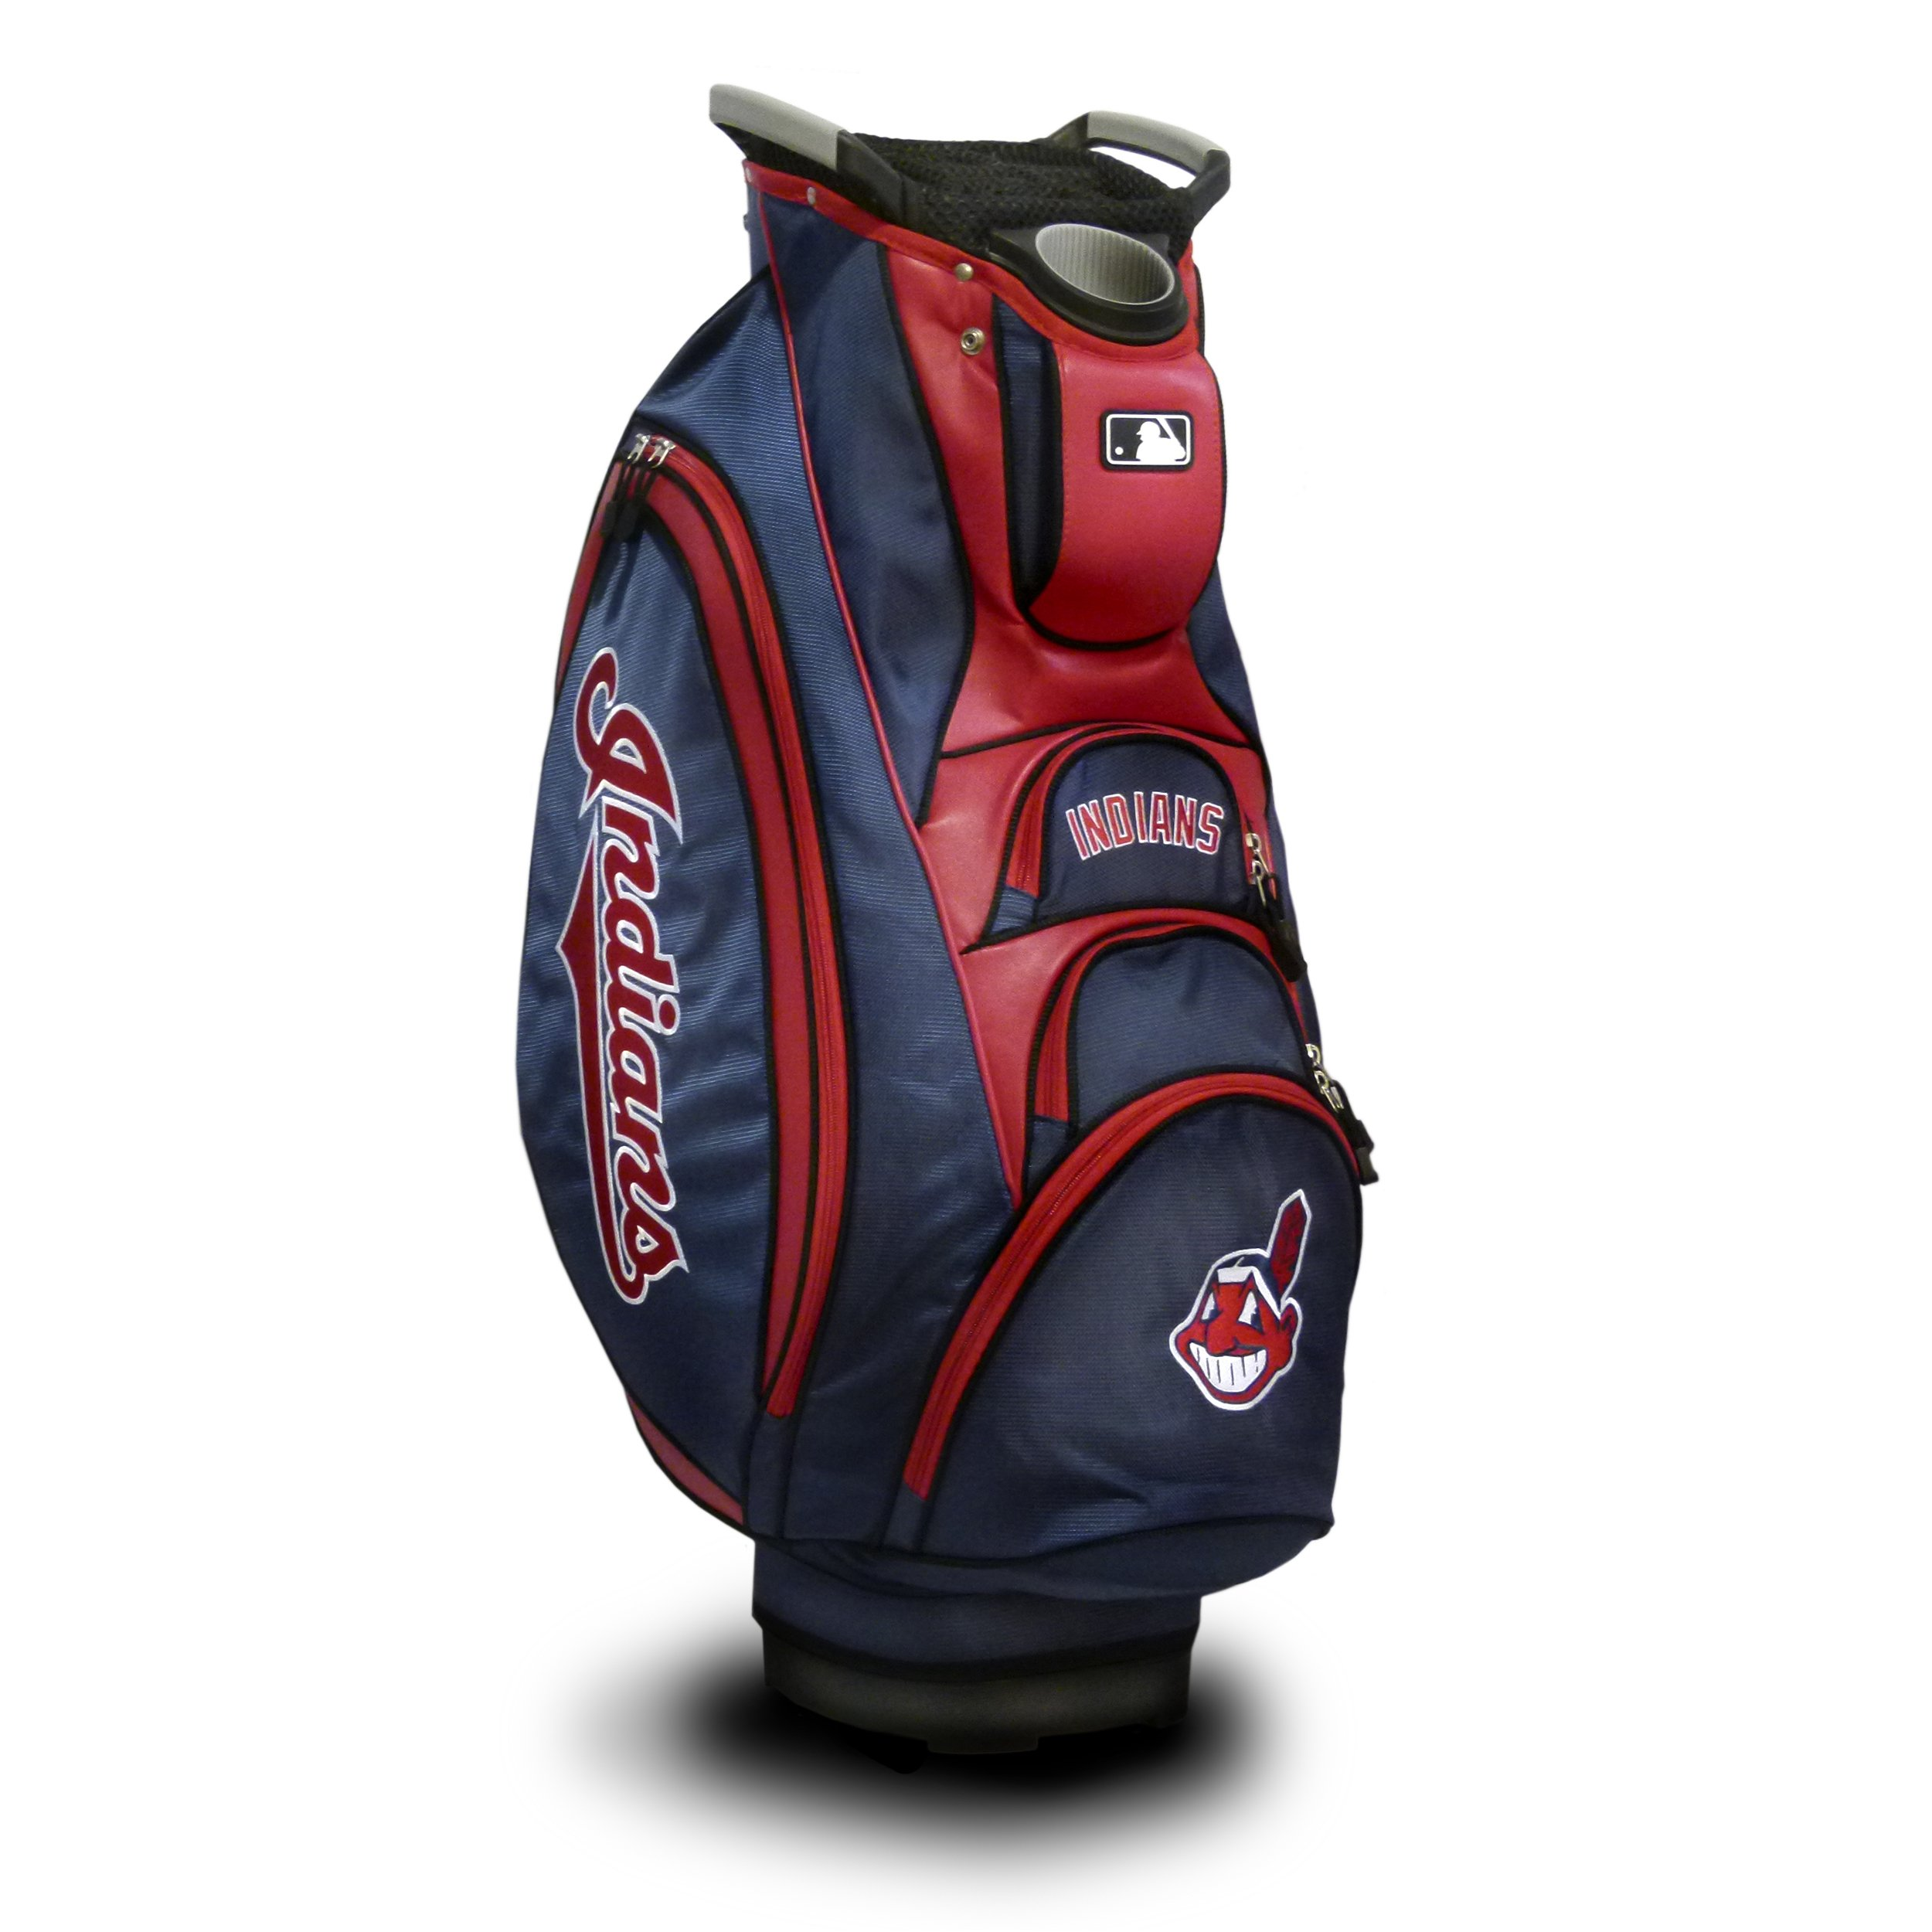 Team Golf MLB Cleveland Indians Victory Golf Cart Bag, 10-Way Top with Integrated Dual Handle & External Putter Well, Cooler Pocket, Padded Strap, Umbrella Holder & Removable Rain Hood